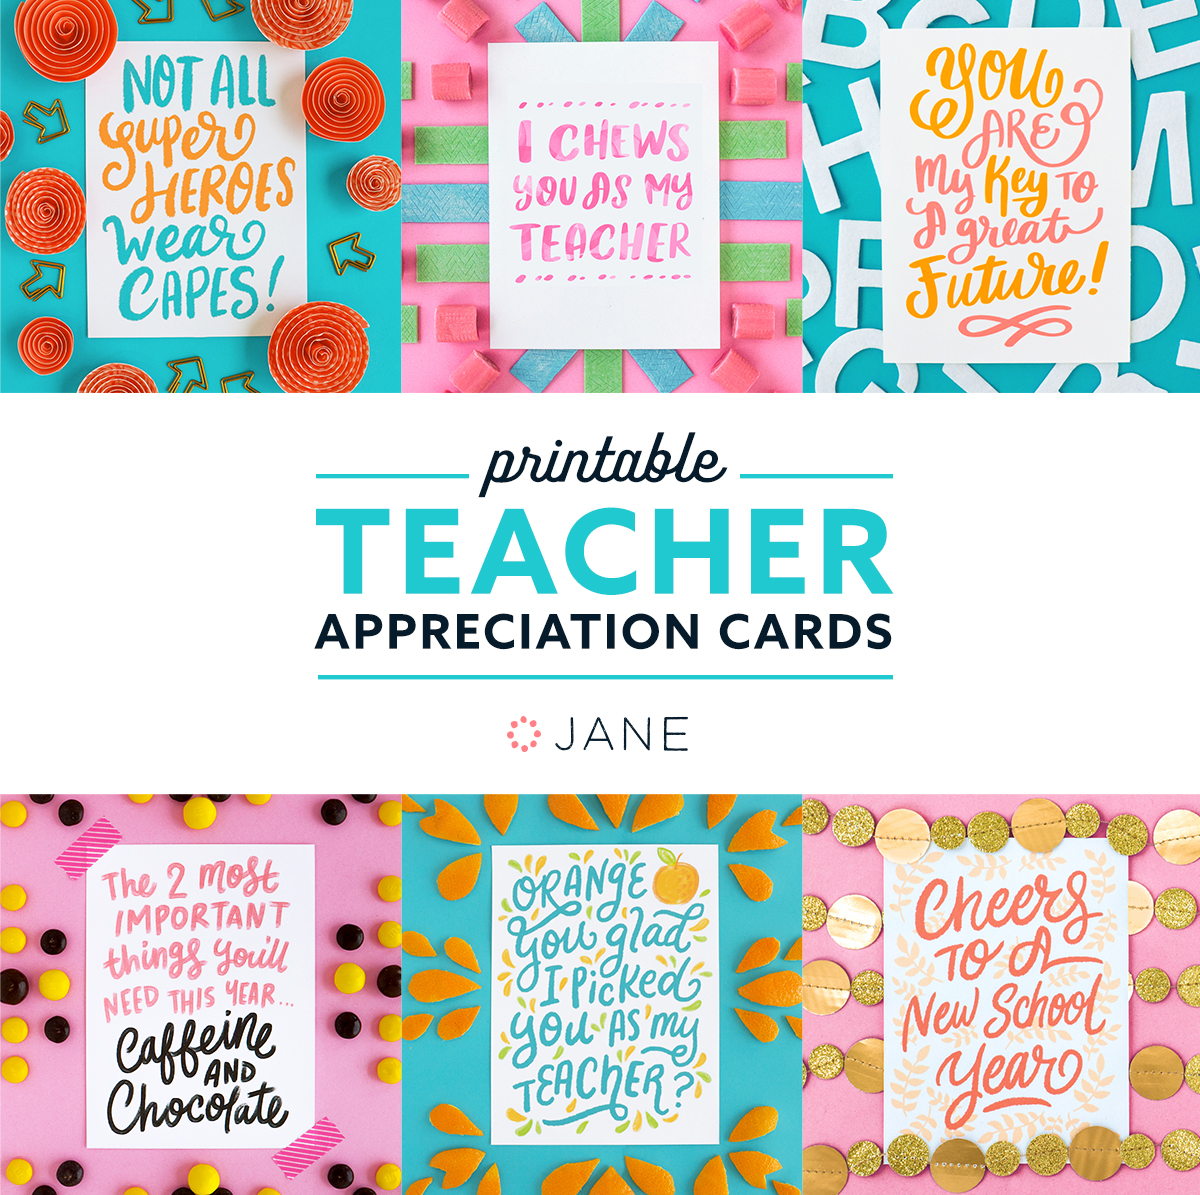 Jane.com Free Teacher Appreciation Printable Cards